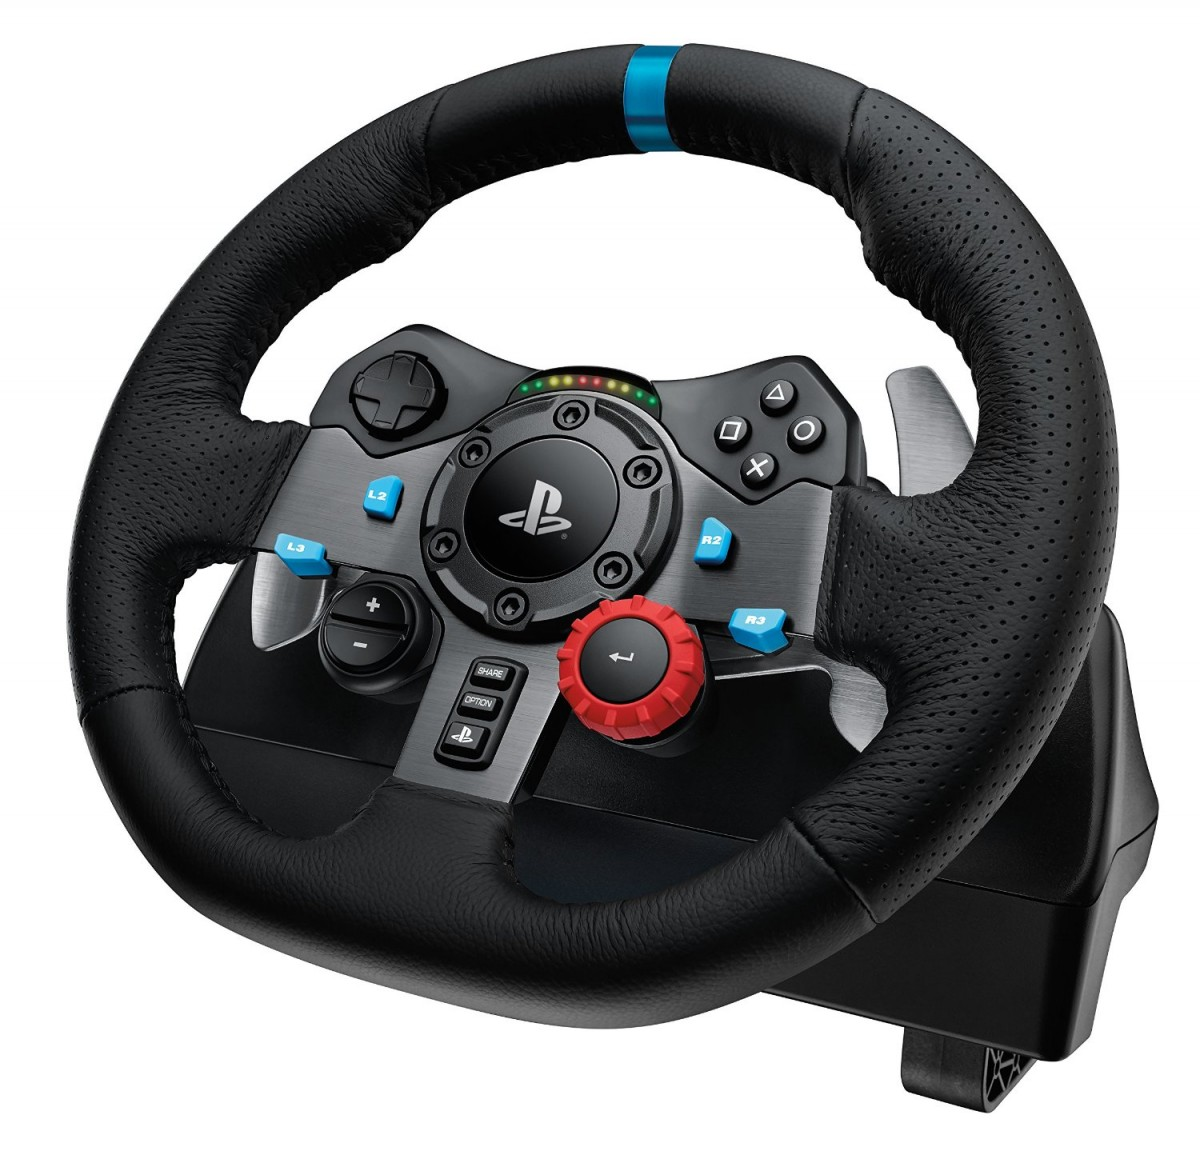 29498cf5aad Logitech G29 Driving Force Race Steering Wheel (941-000143). by IT  Professional